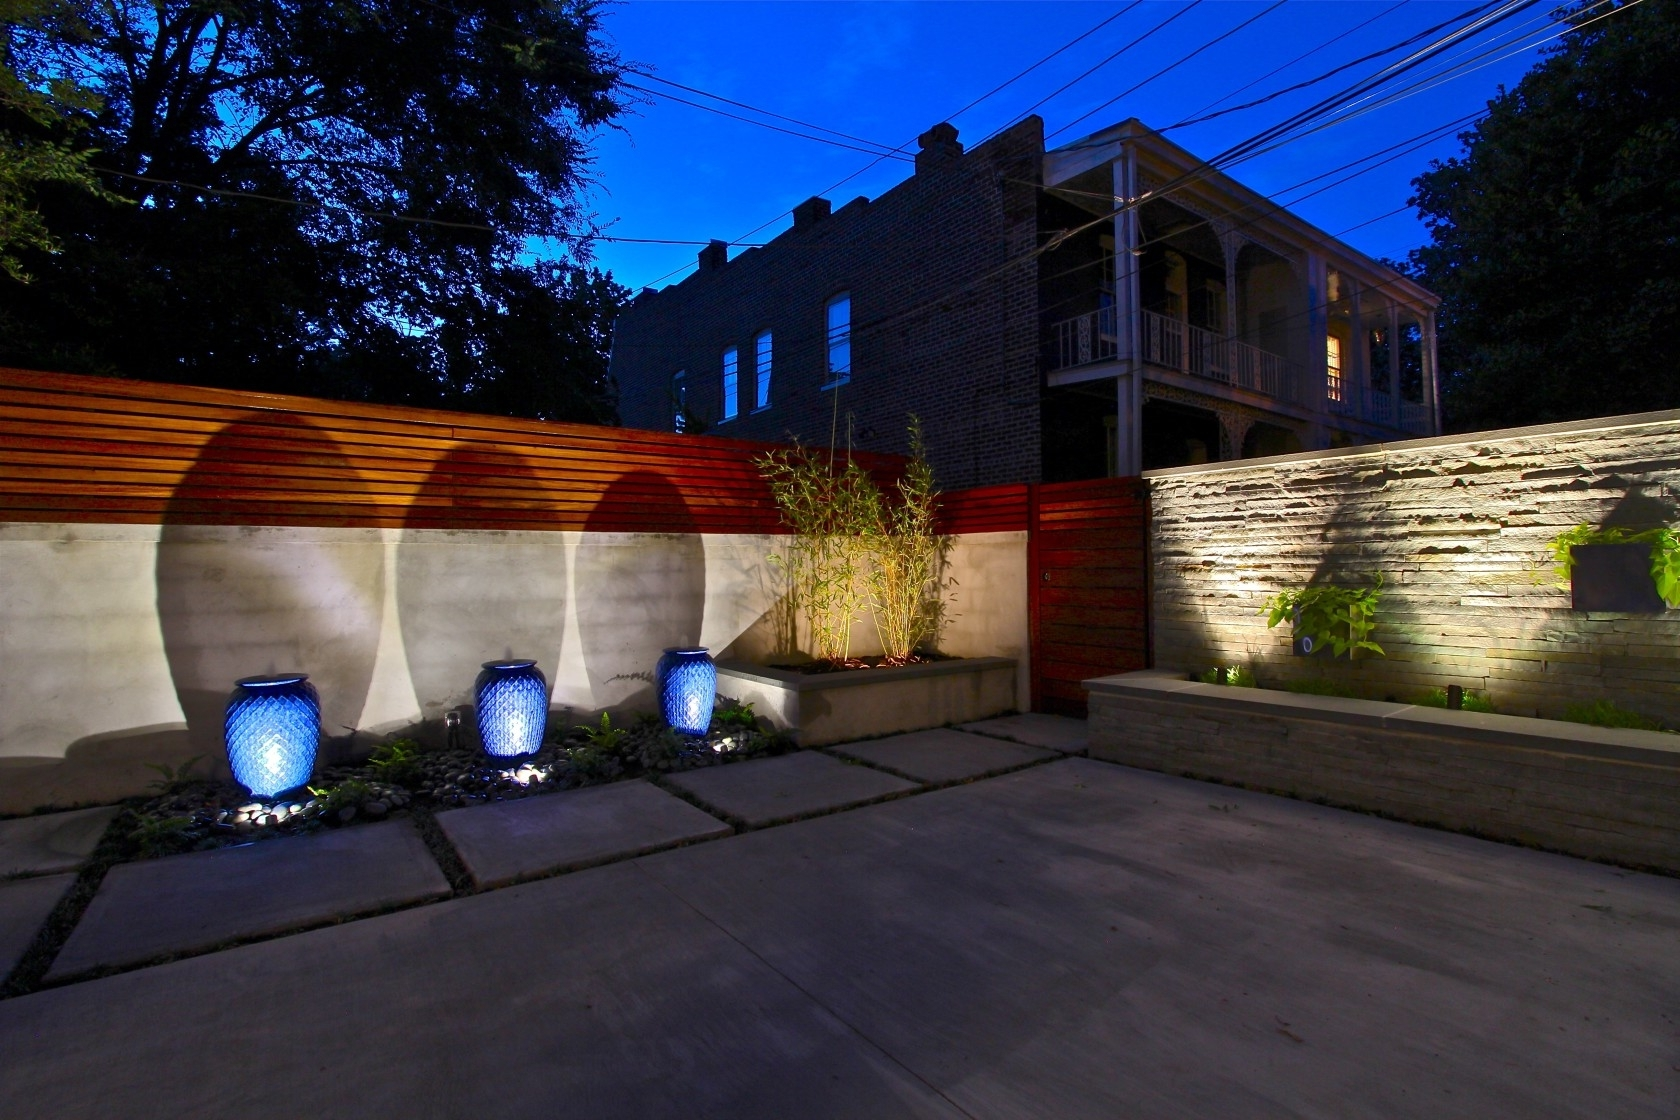 Fashionable Outdoor And Patio: Awesome Outdoor String Lightong For Backyard Wall Within Outdoor Wall Patio Lighting (View 3 of 20)